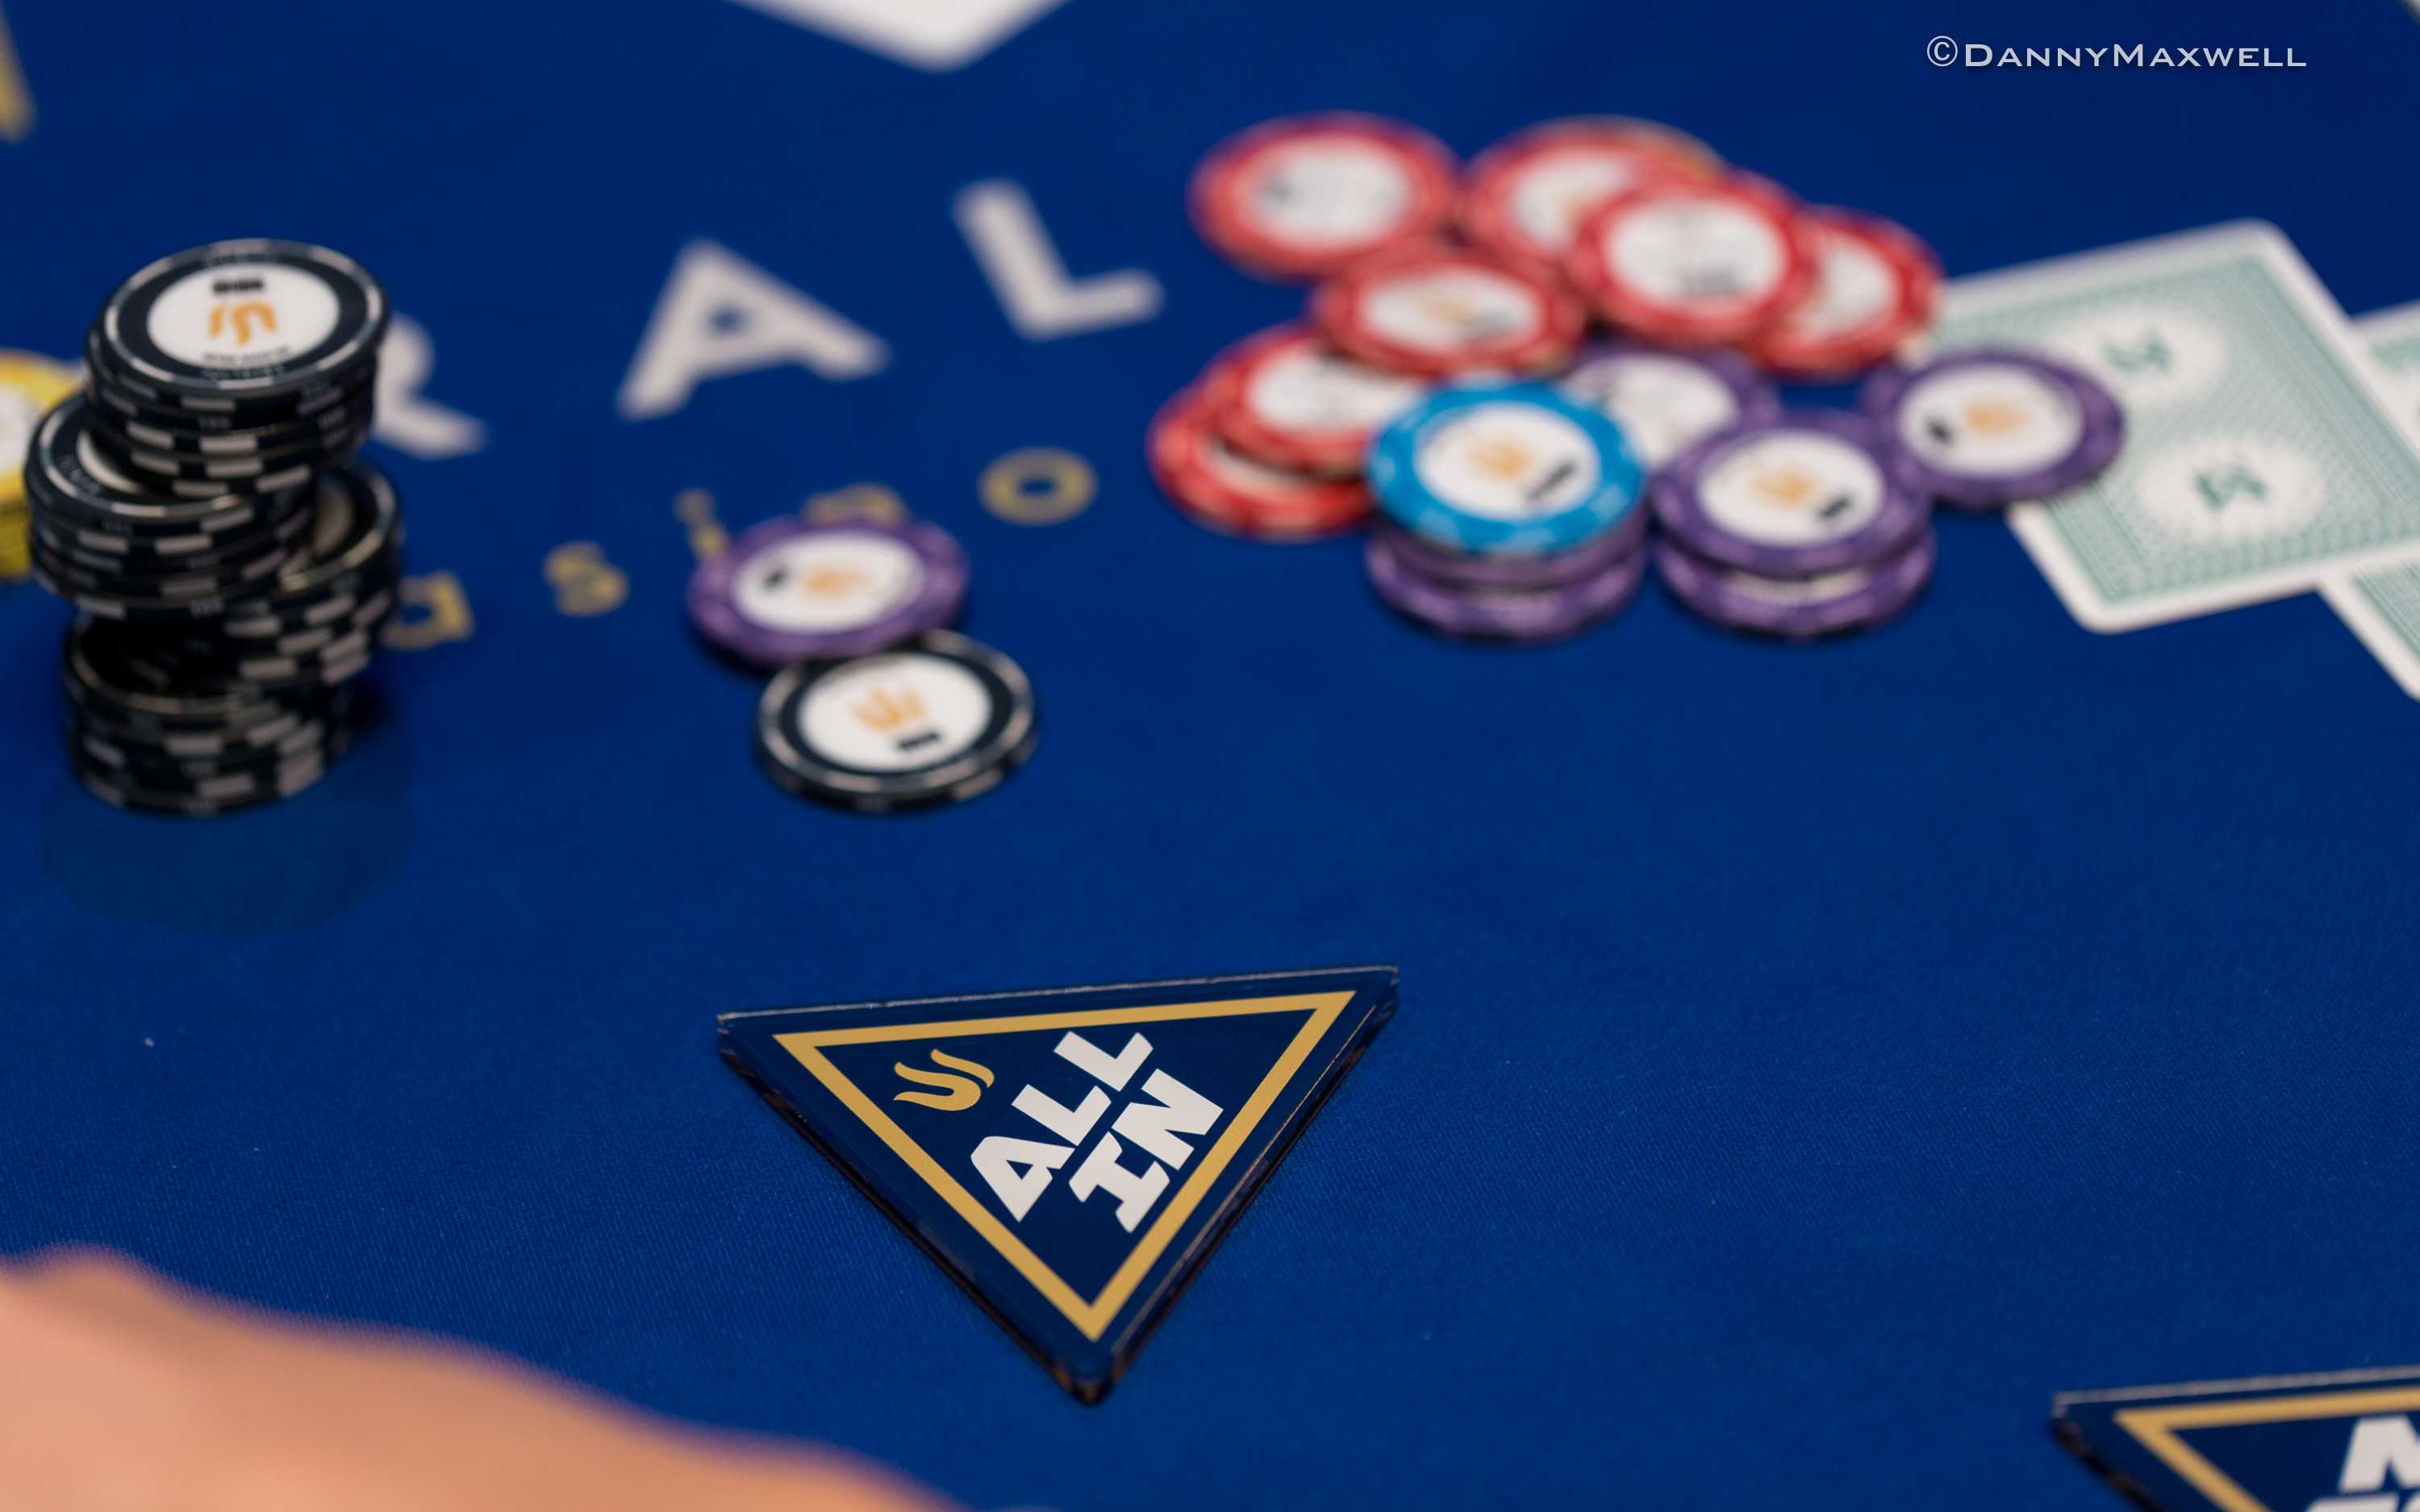 Attorney general declines to offer opinion about poker houses